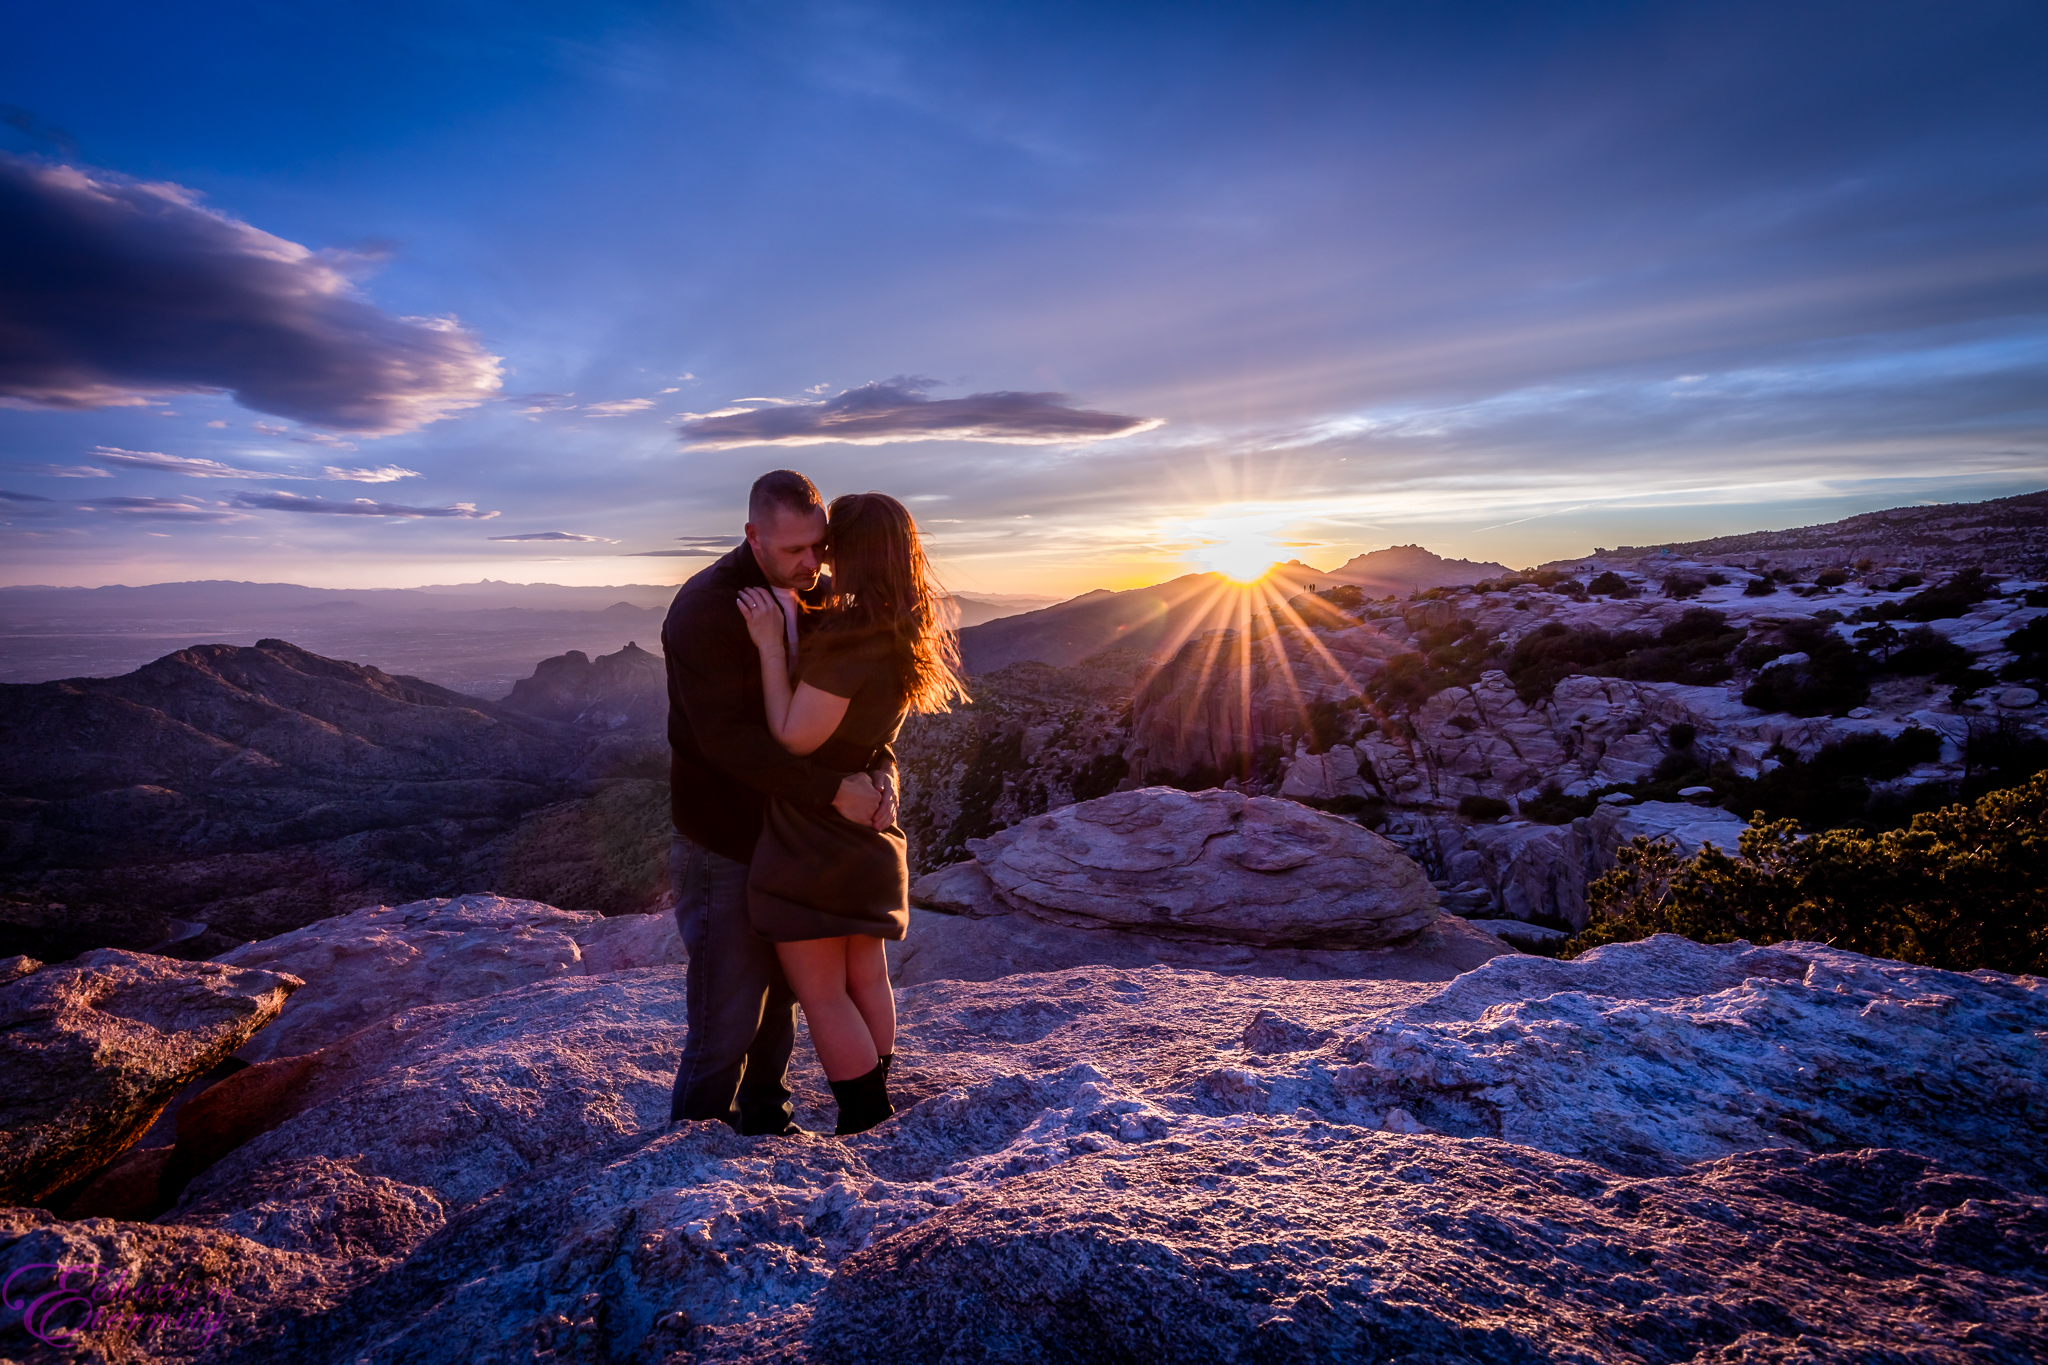 Mt. Lemmon Engagement photography portfolio 01.jpg